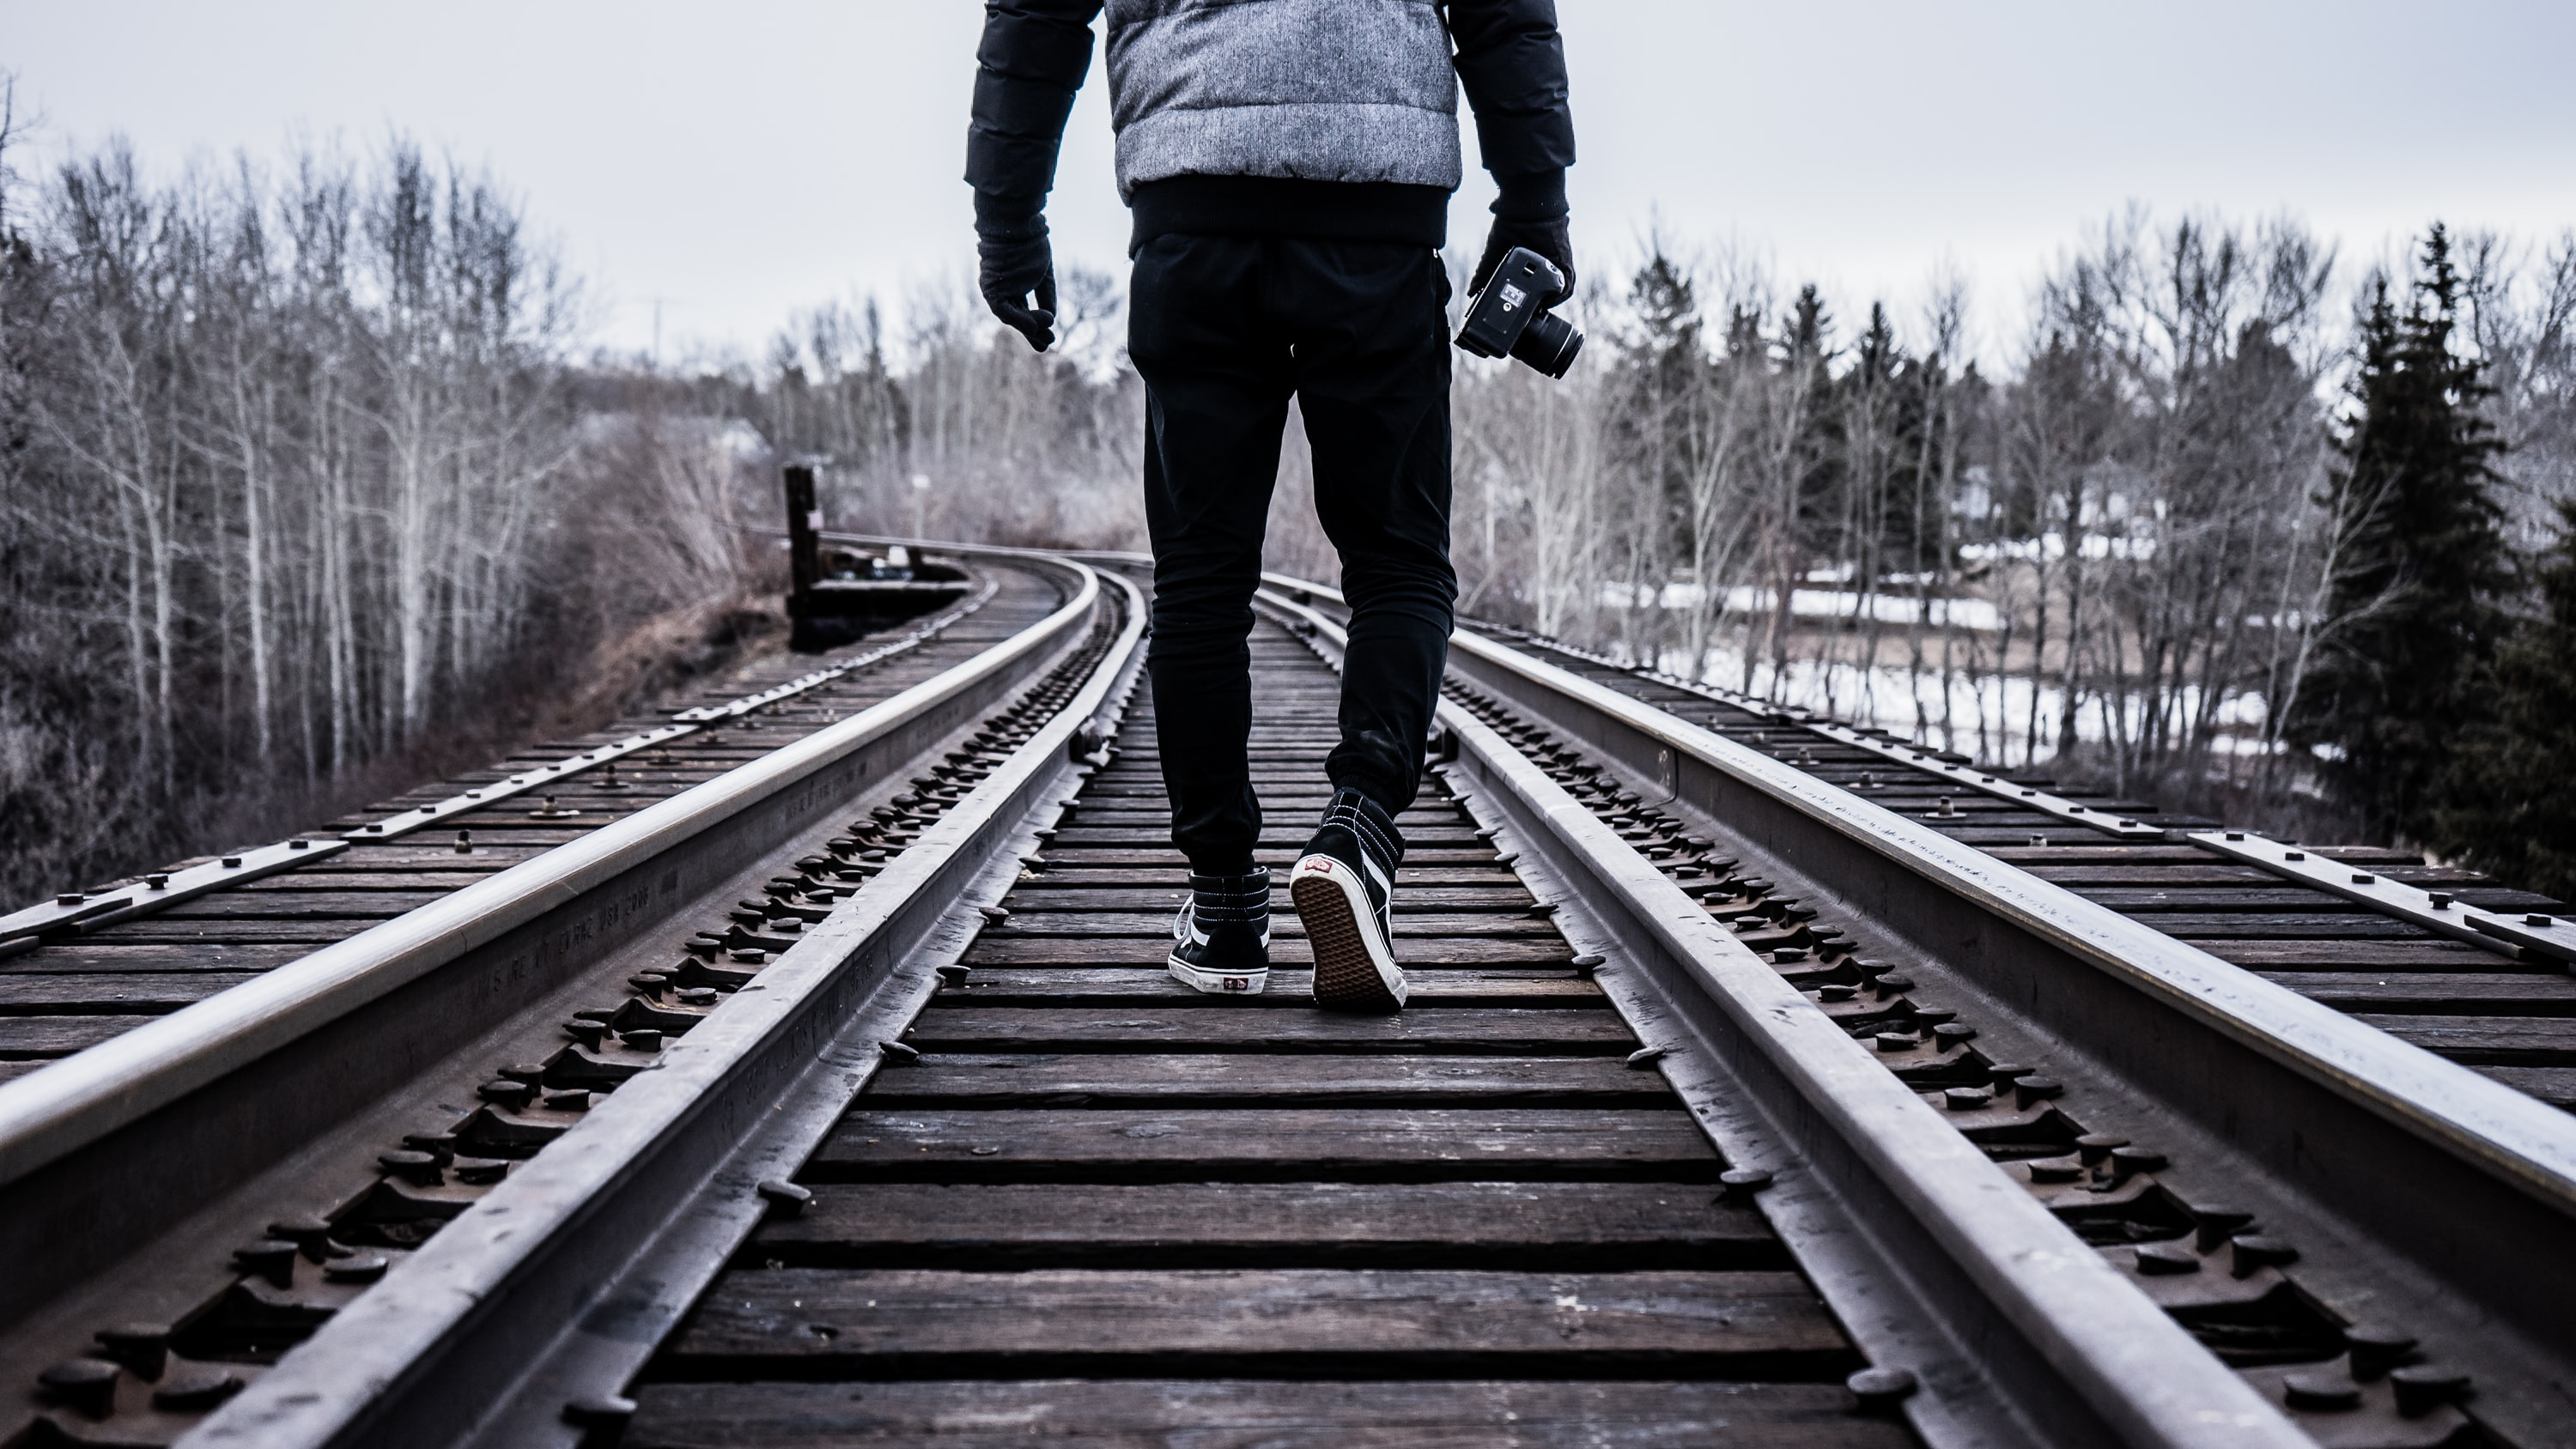 man waking on train rail